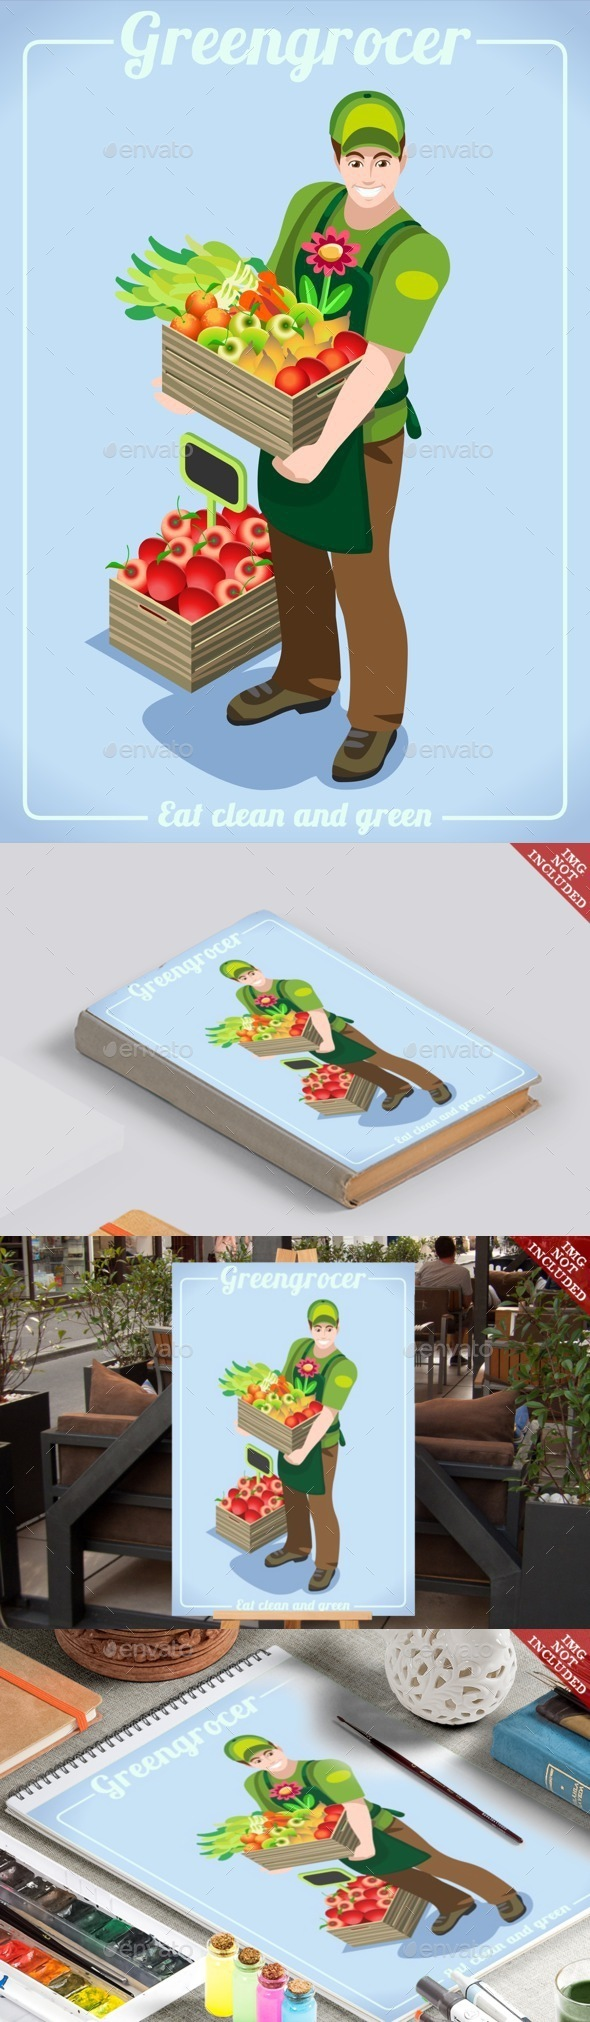 Greengrocer Services People Isometric - People Characters